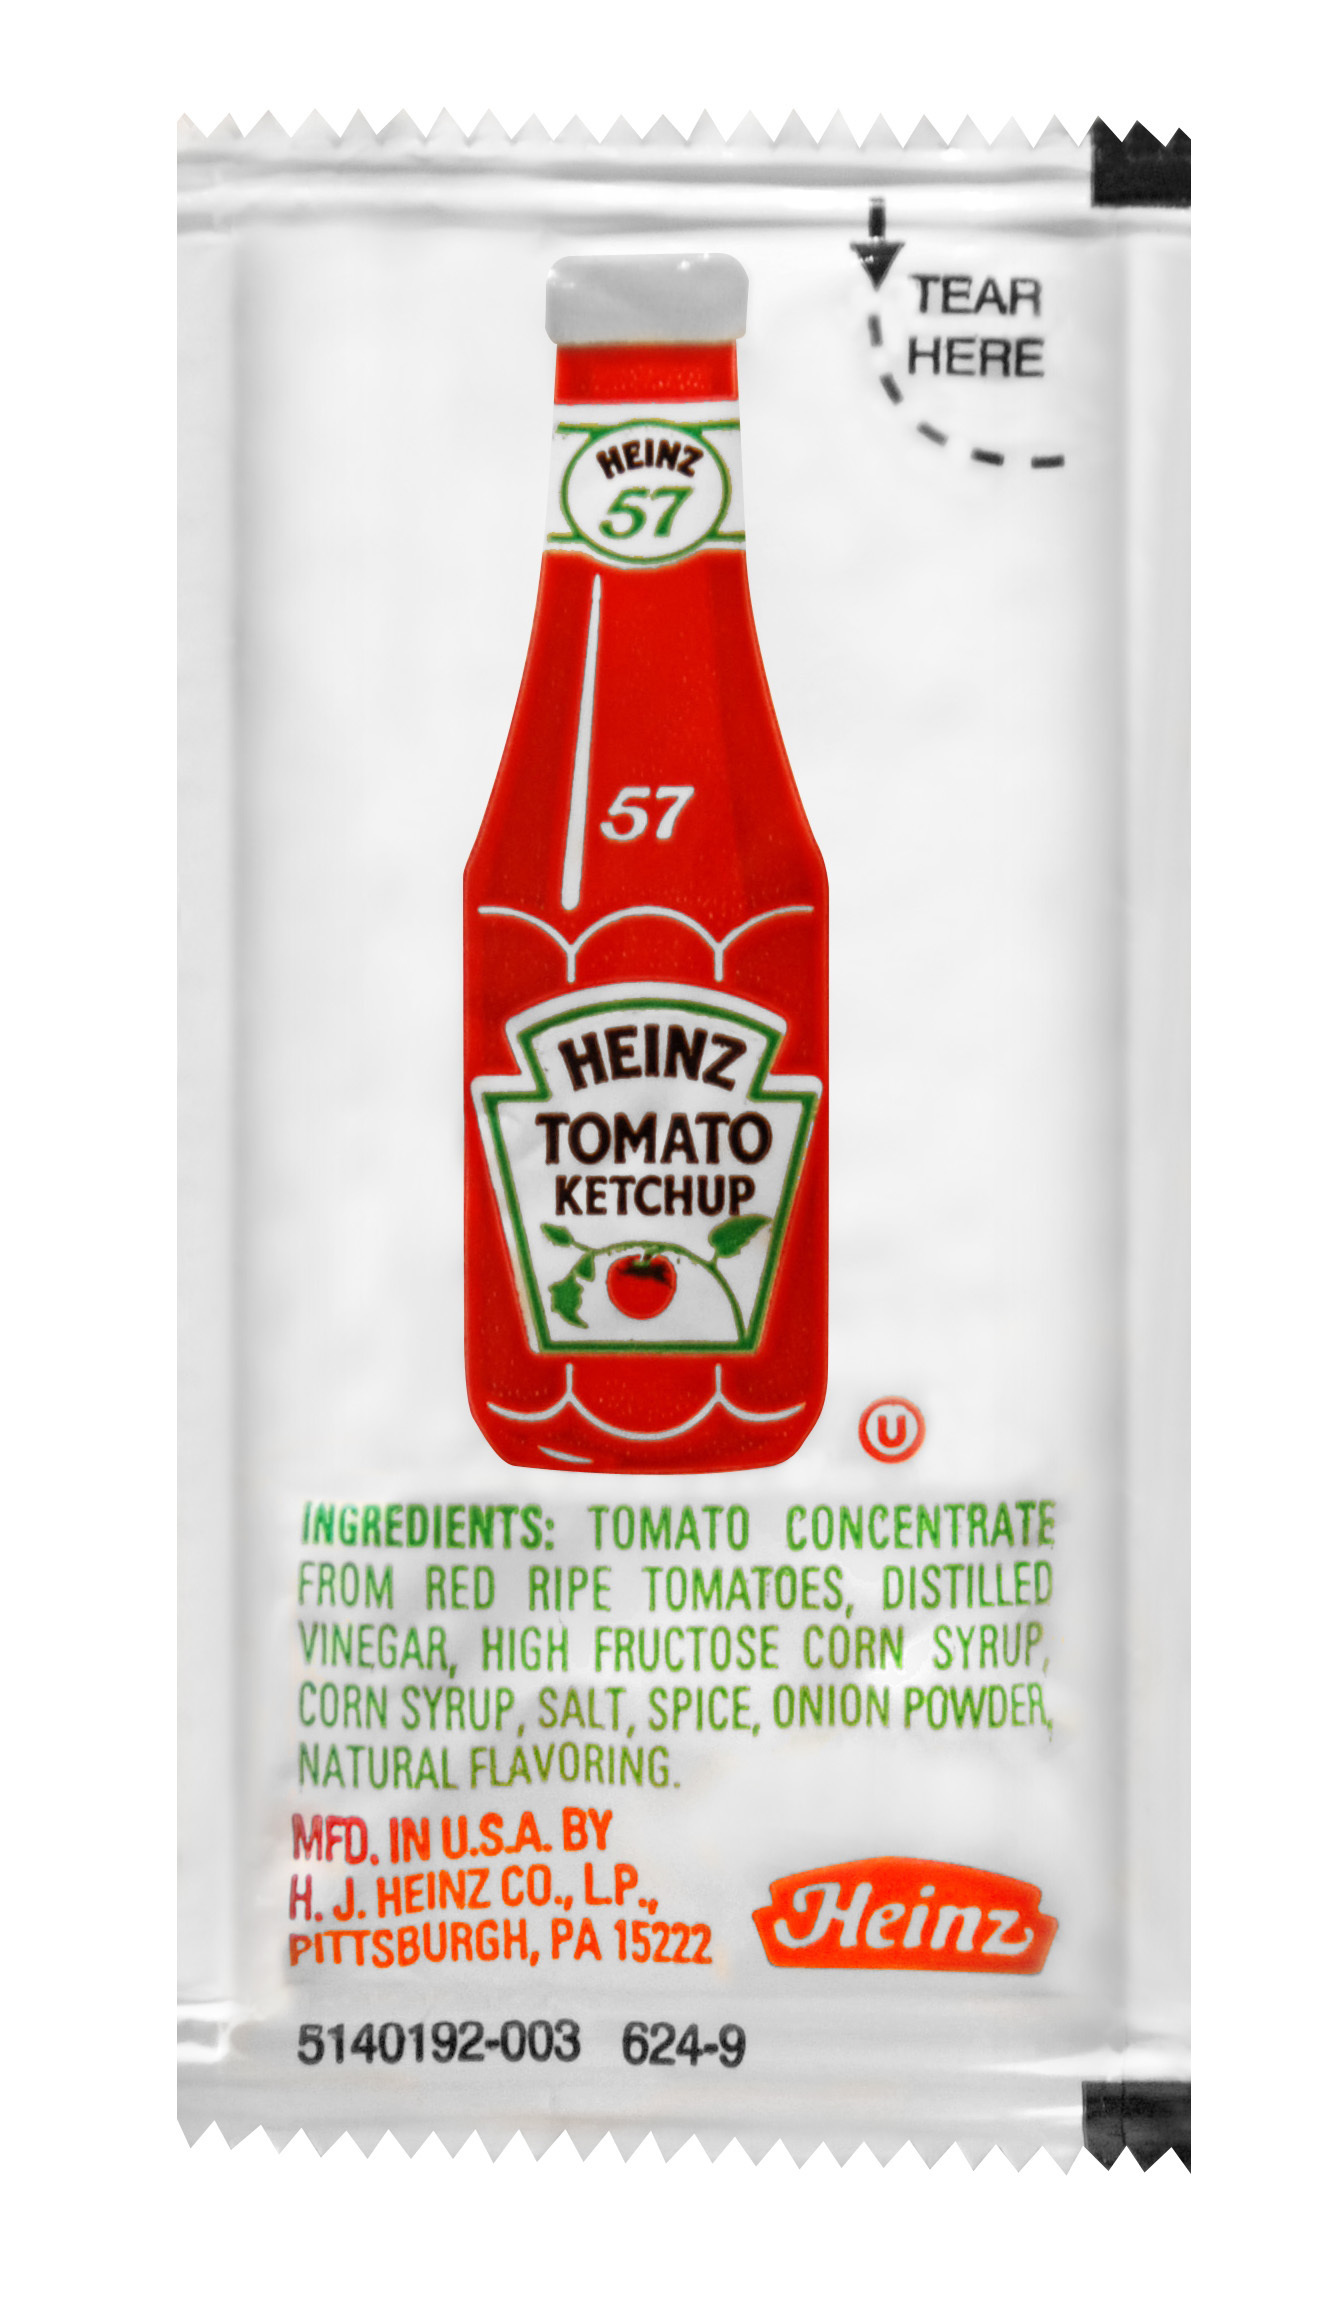 Heinz Ketchup Packet, 9 gm. image